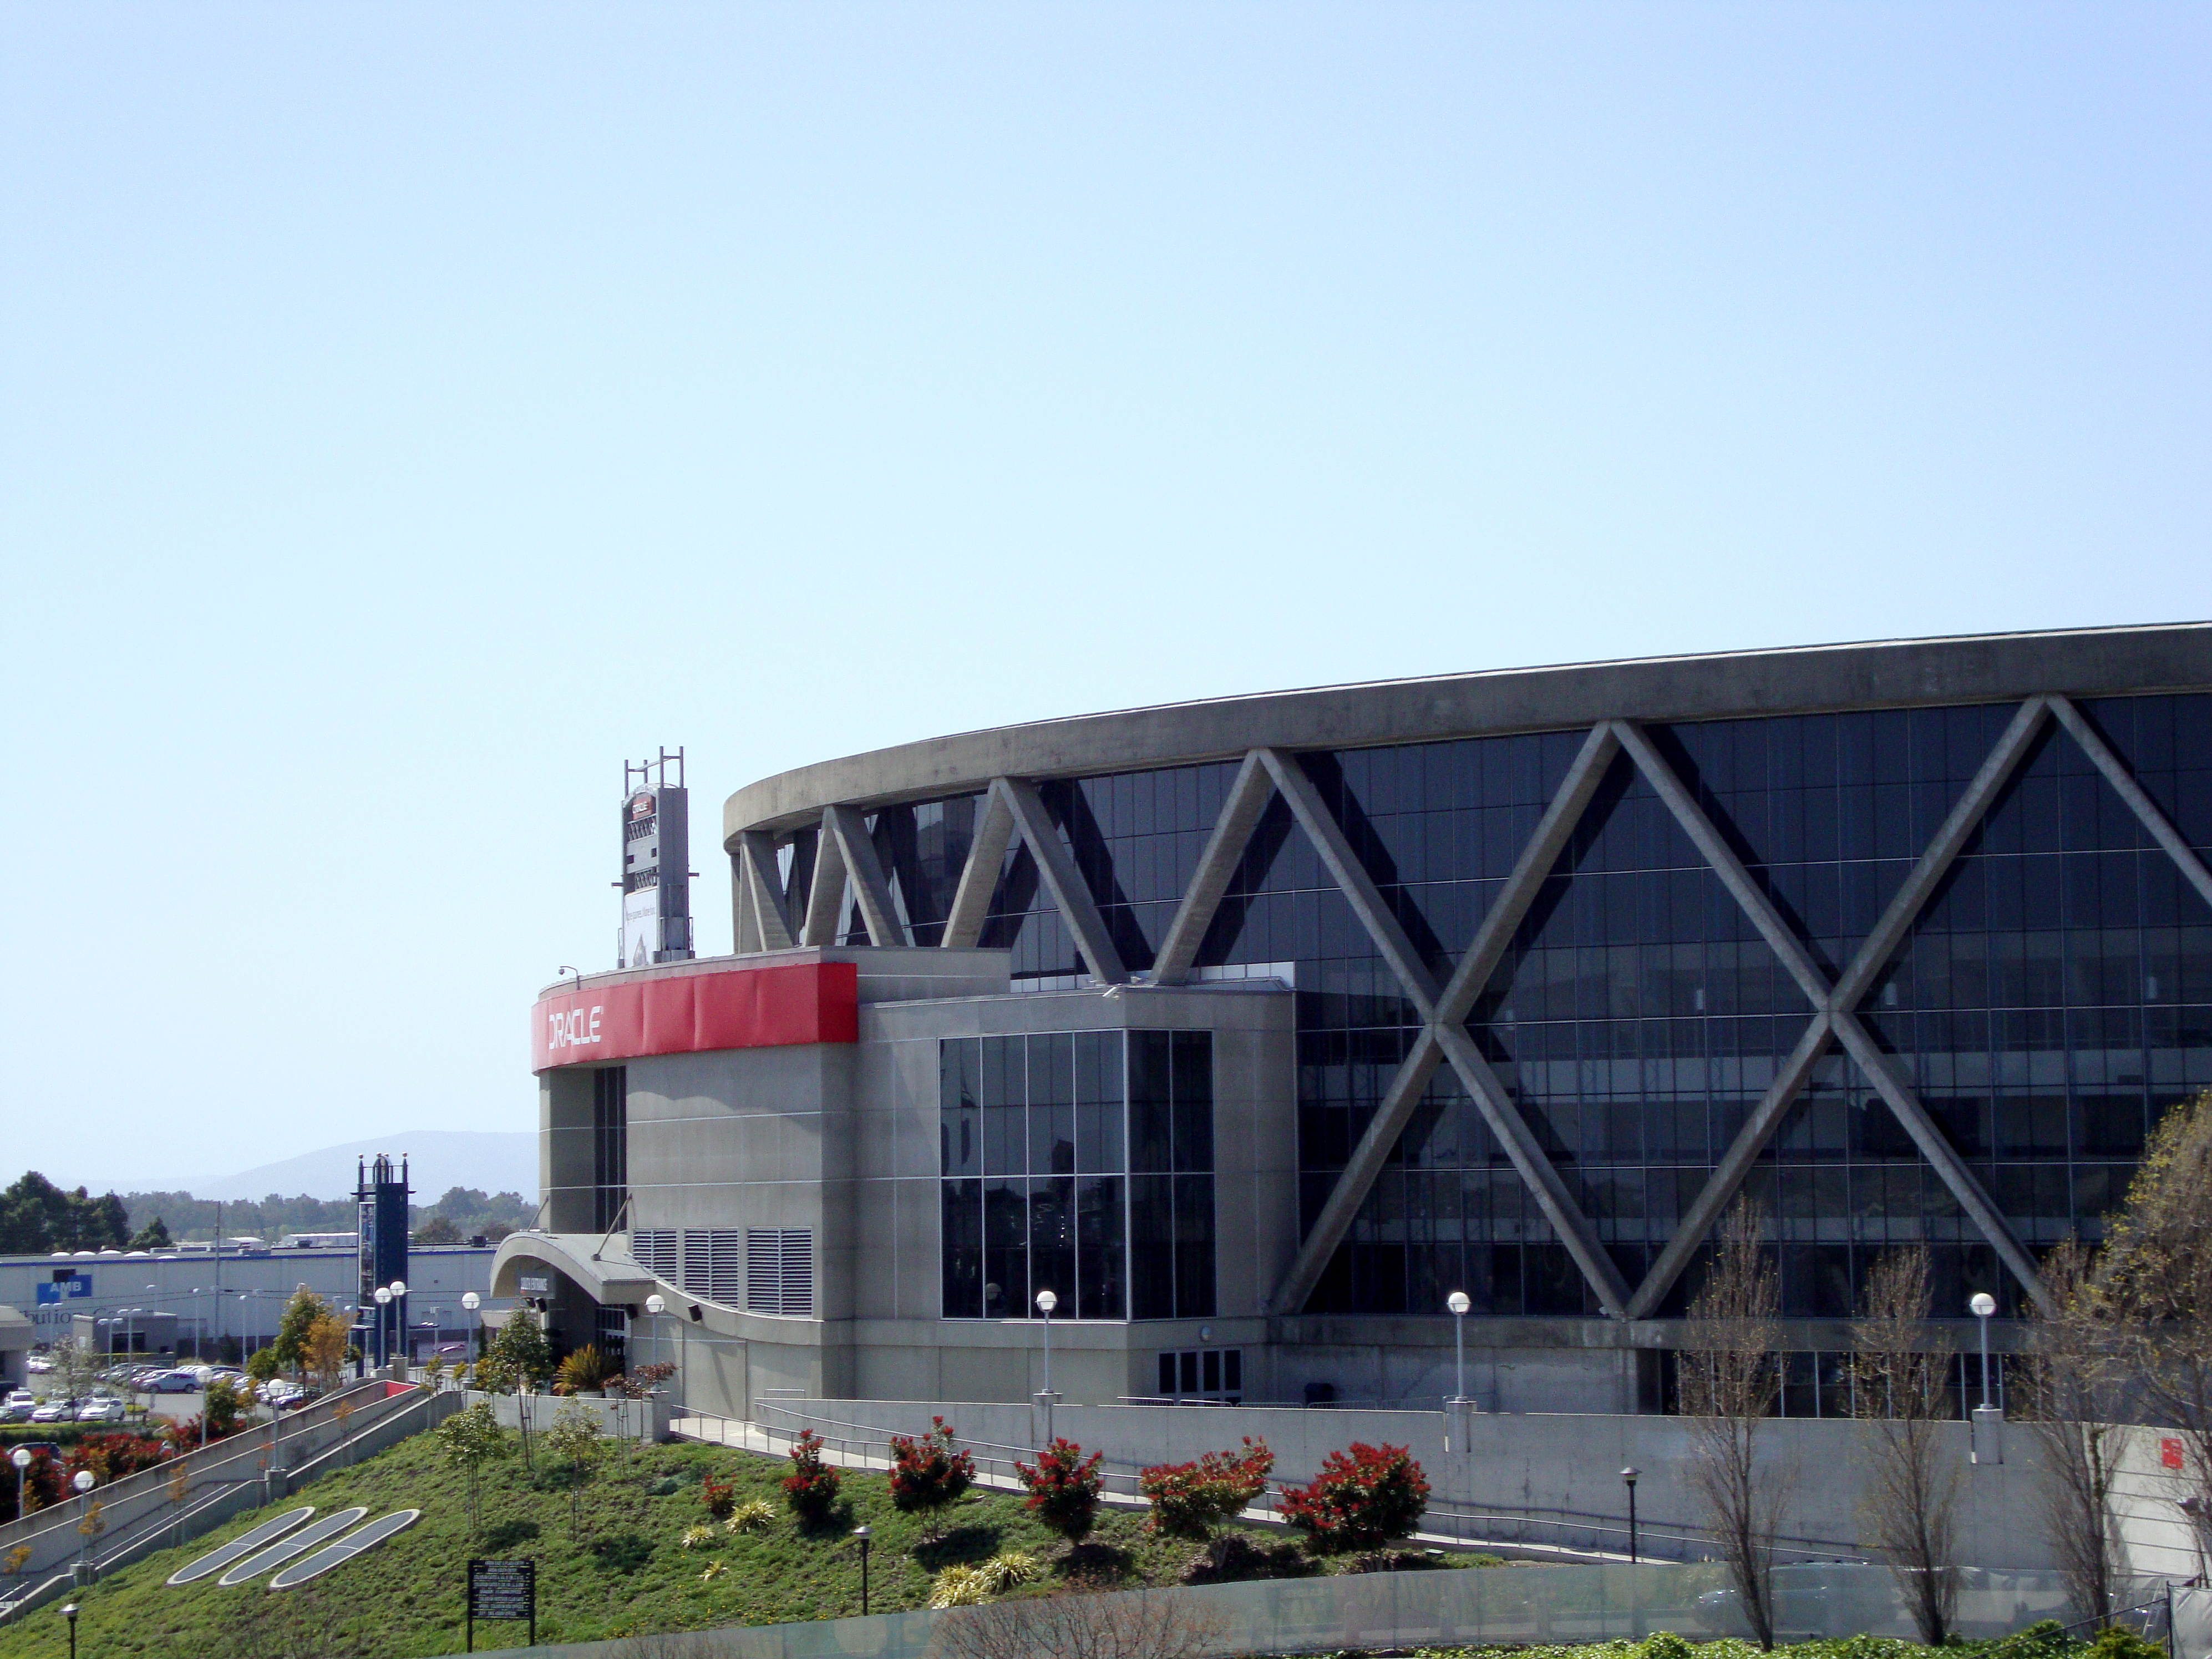 Oakland - April 8, 2010.: The Oracle Arena which is a multi-purpose sports and concert venue which is home to the Golden State Warriors of the NBA.